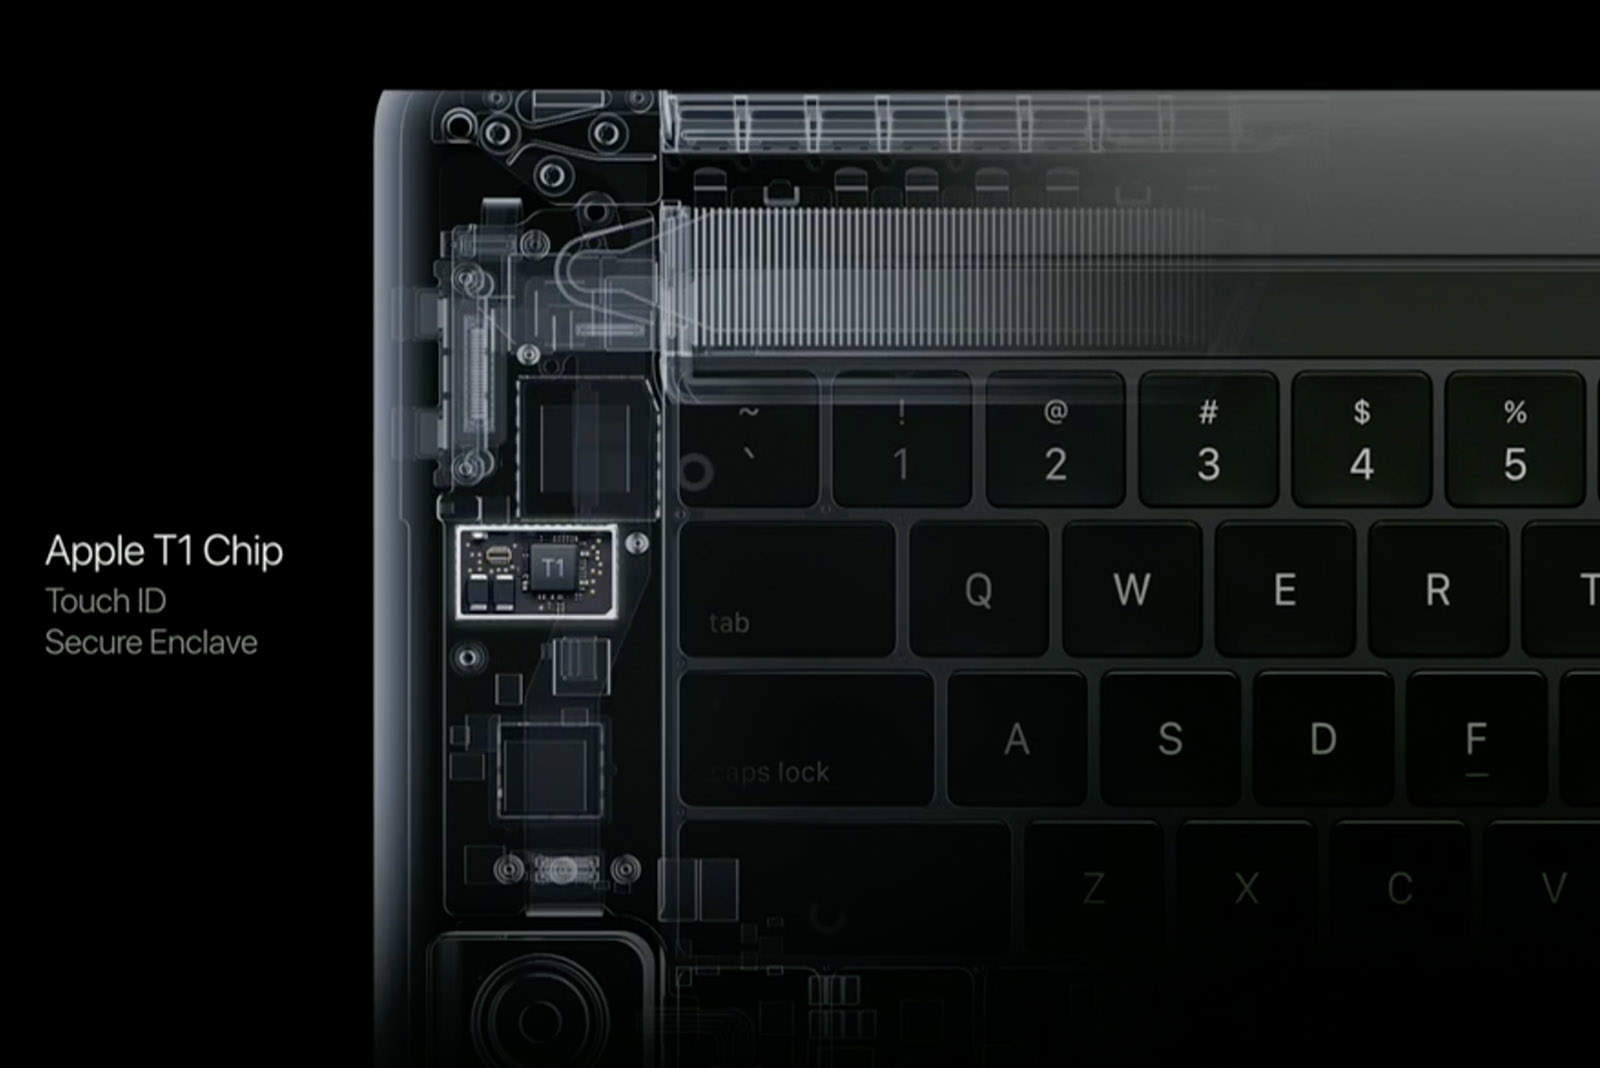 The MacBook Pro has a special T1 chip inside.